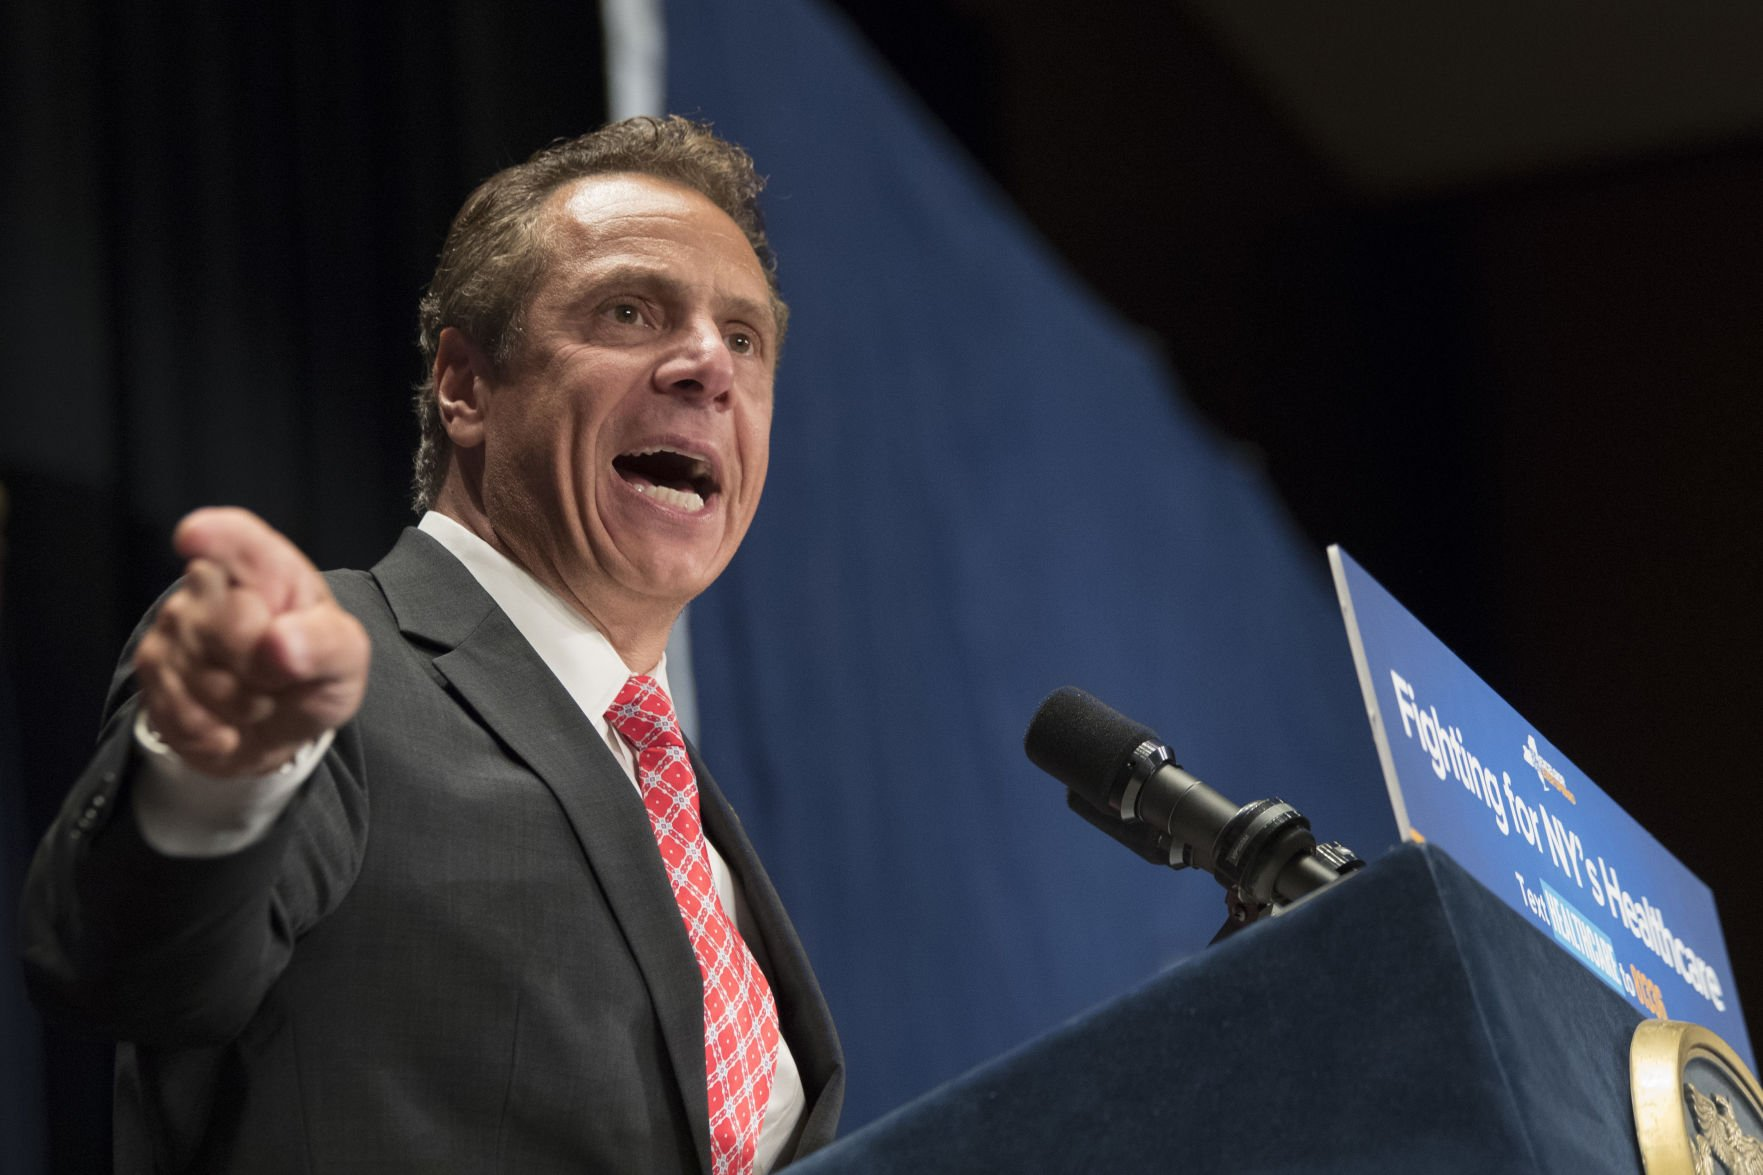 Cuomo introduces new hate crime legislation